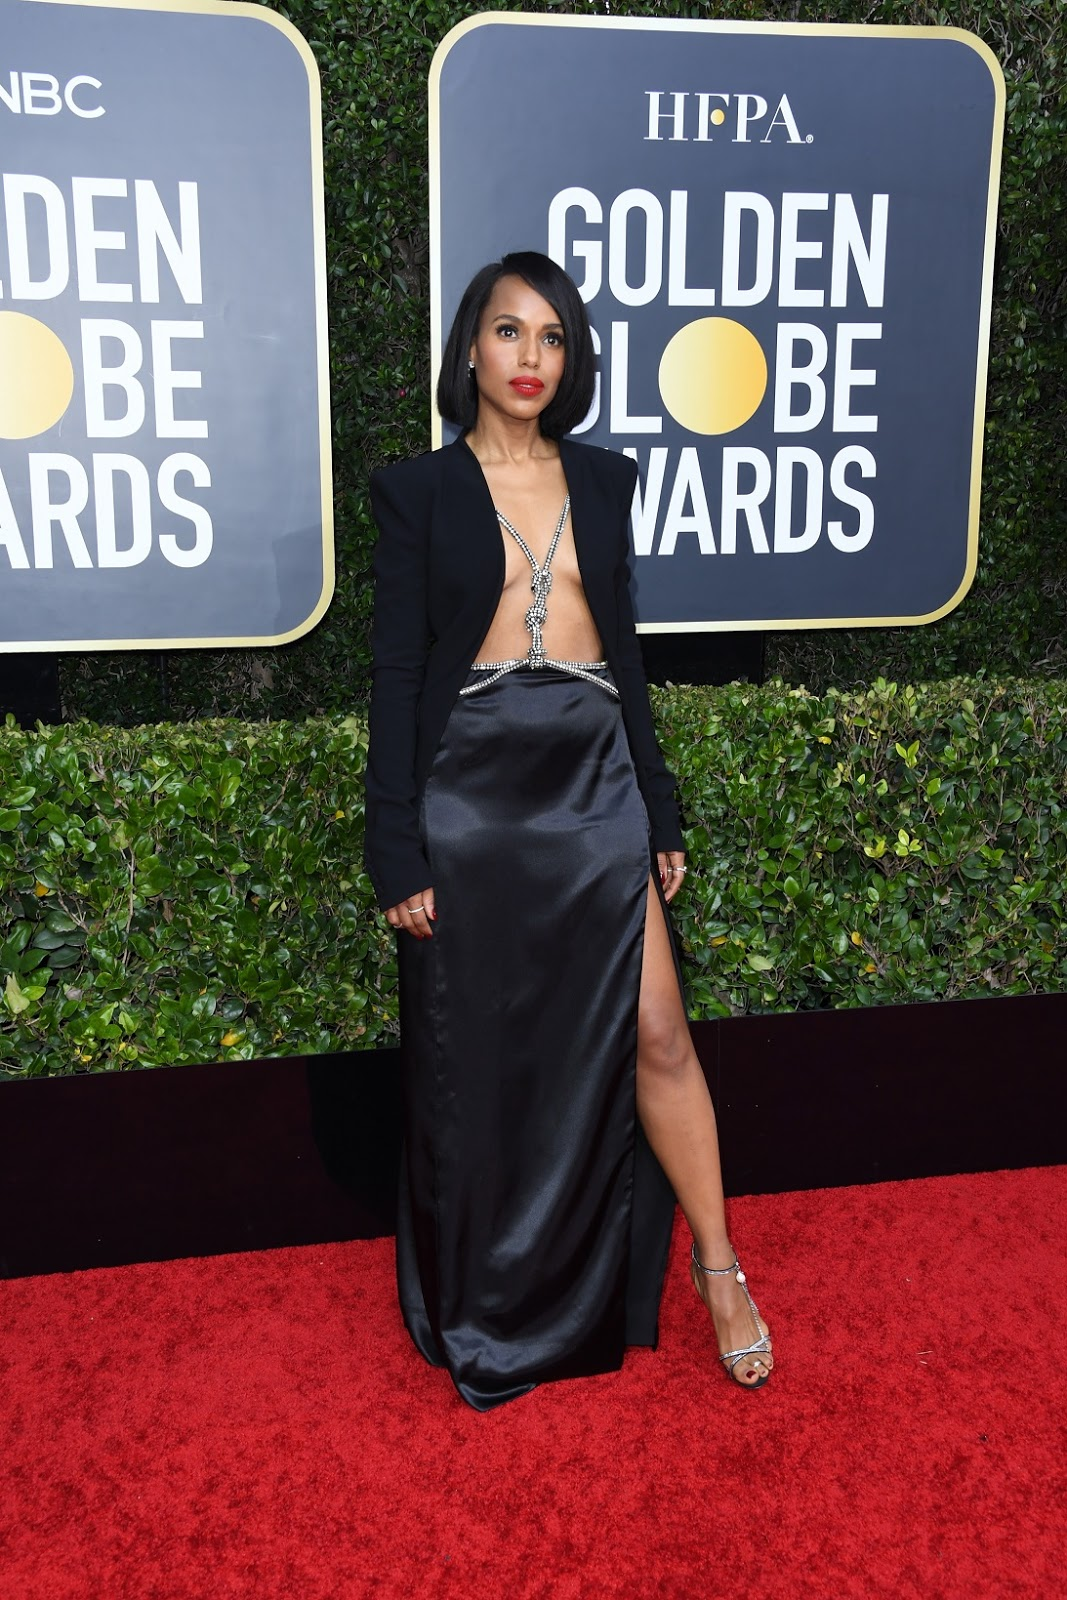 Kerry Washington Channels Her Inner Rihanna Wearing A Diamond Harness With A Black Blazer At The 2020 Golden Globes